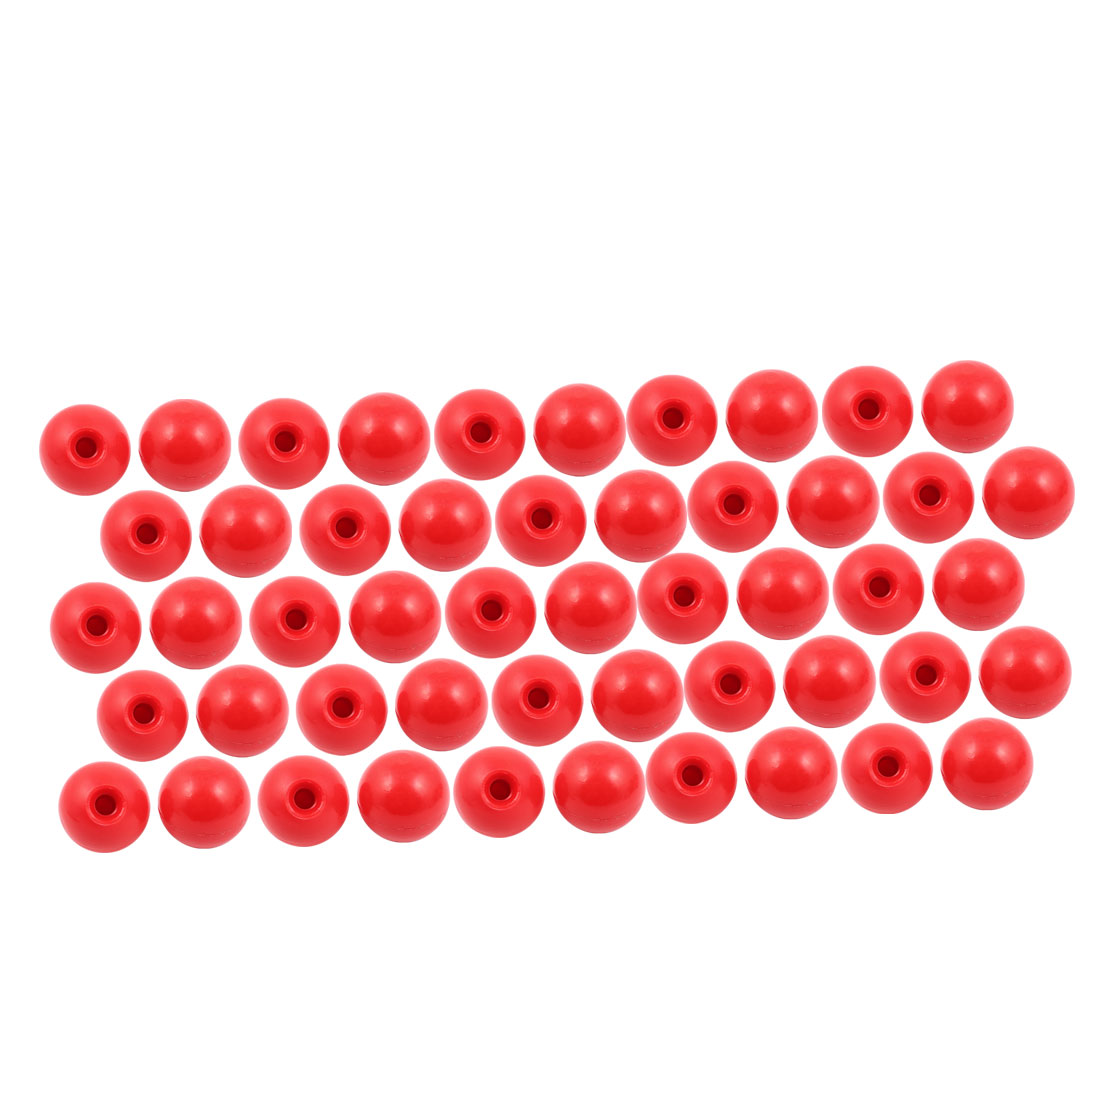 50 Pcs M10 x 40mm Plastic Ball Machine Tool Accessories Console Handle Red